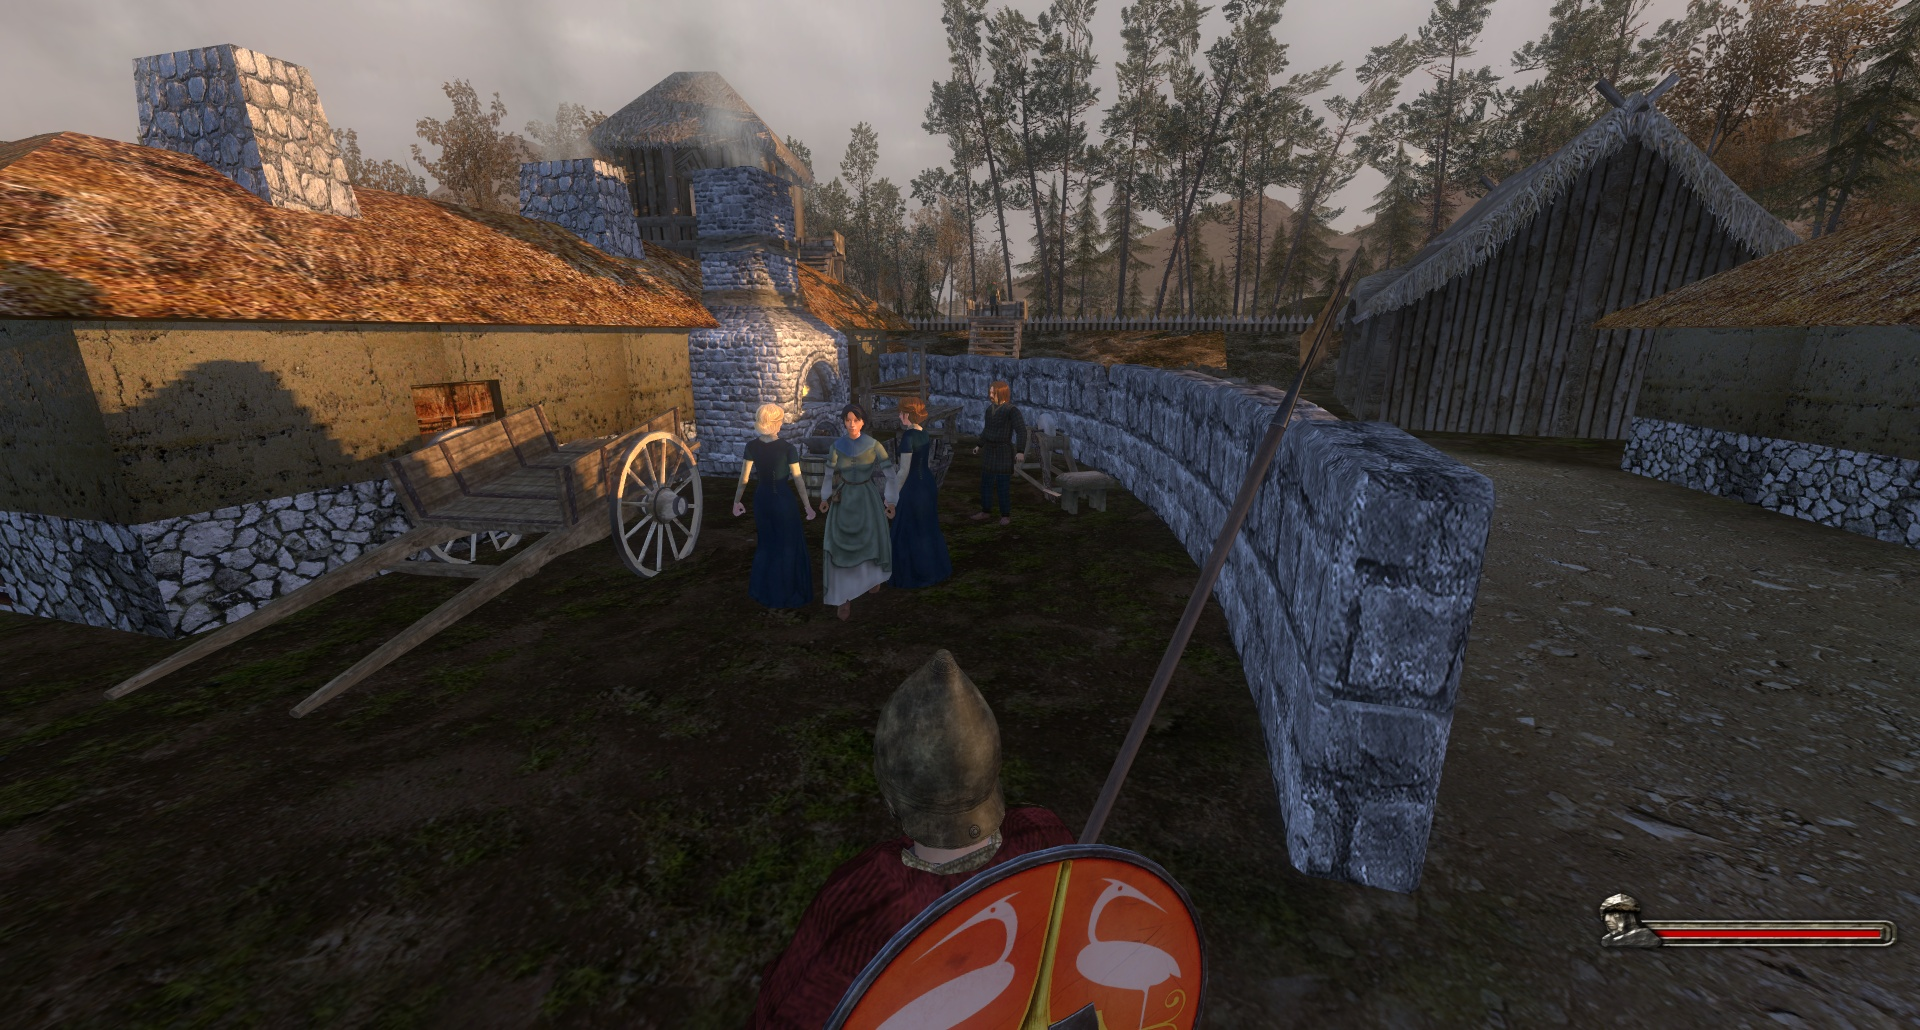 Imperial Rome Warband Mod #1 - To Unite an Empire